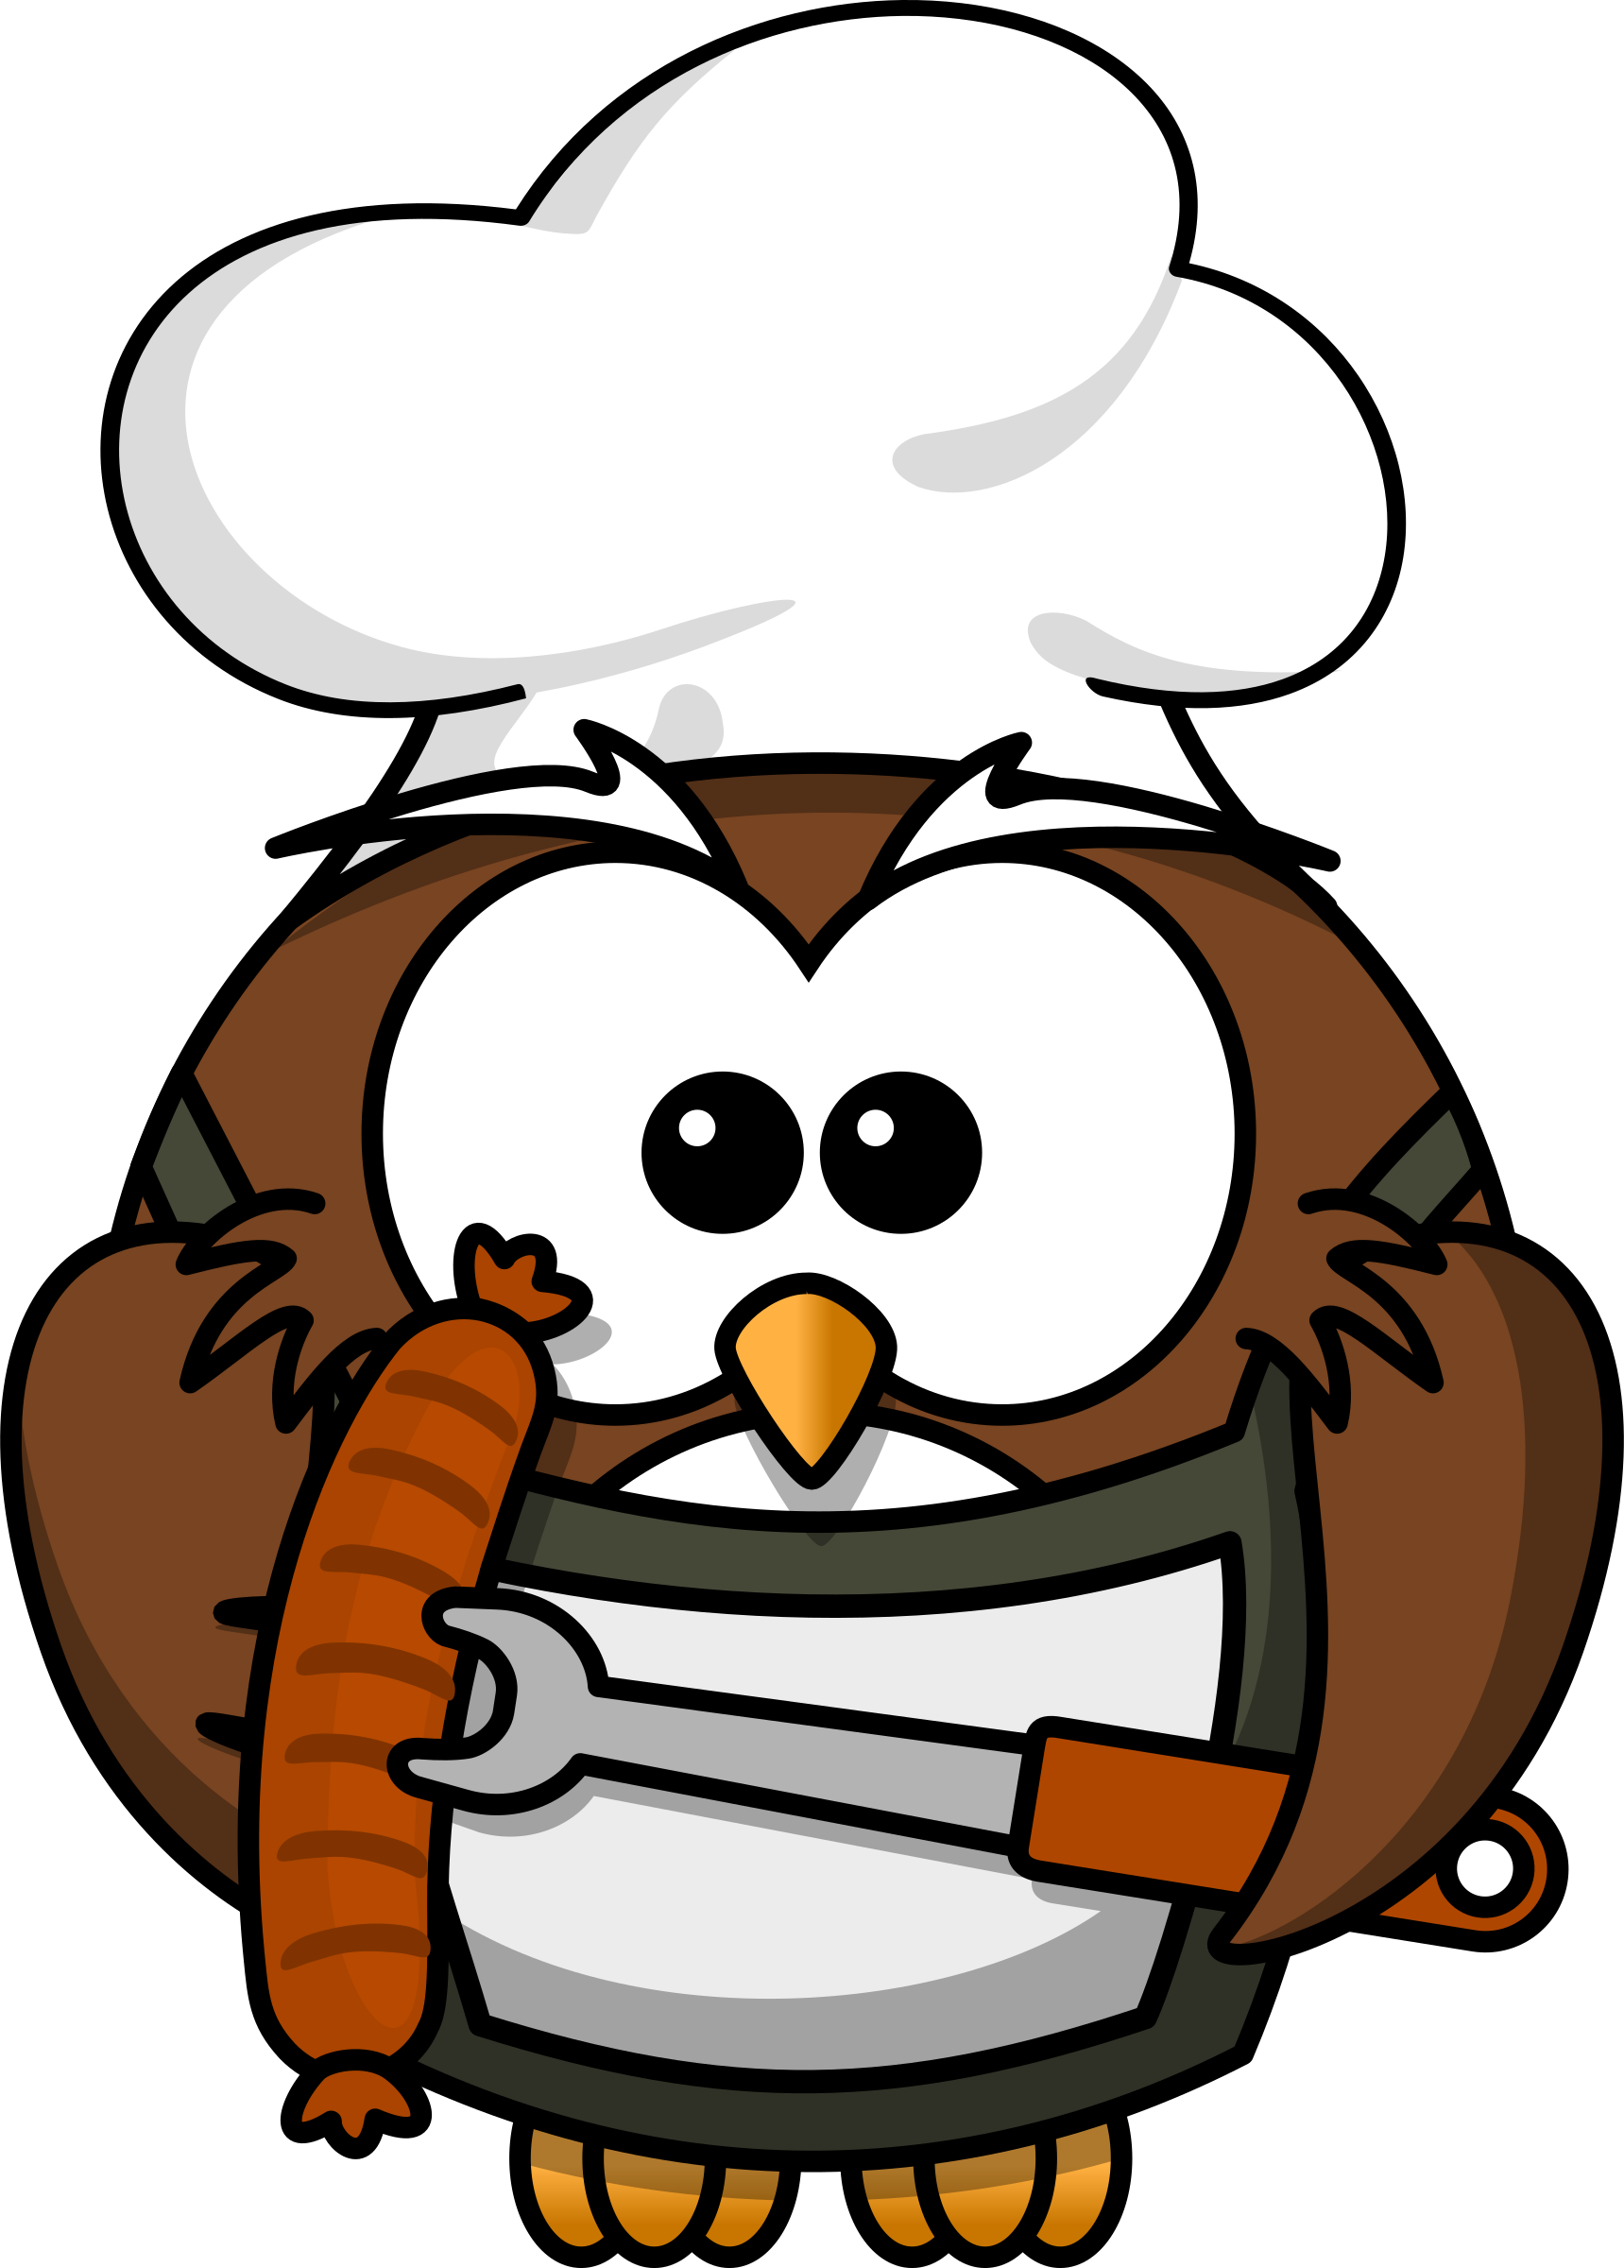 Owl with sausage by bocian